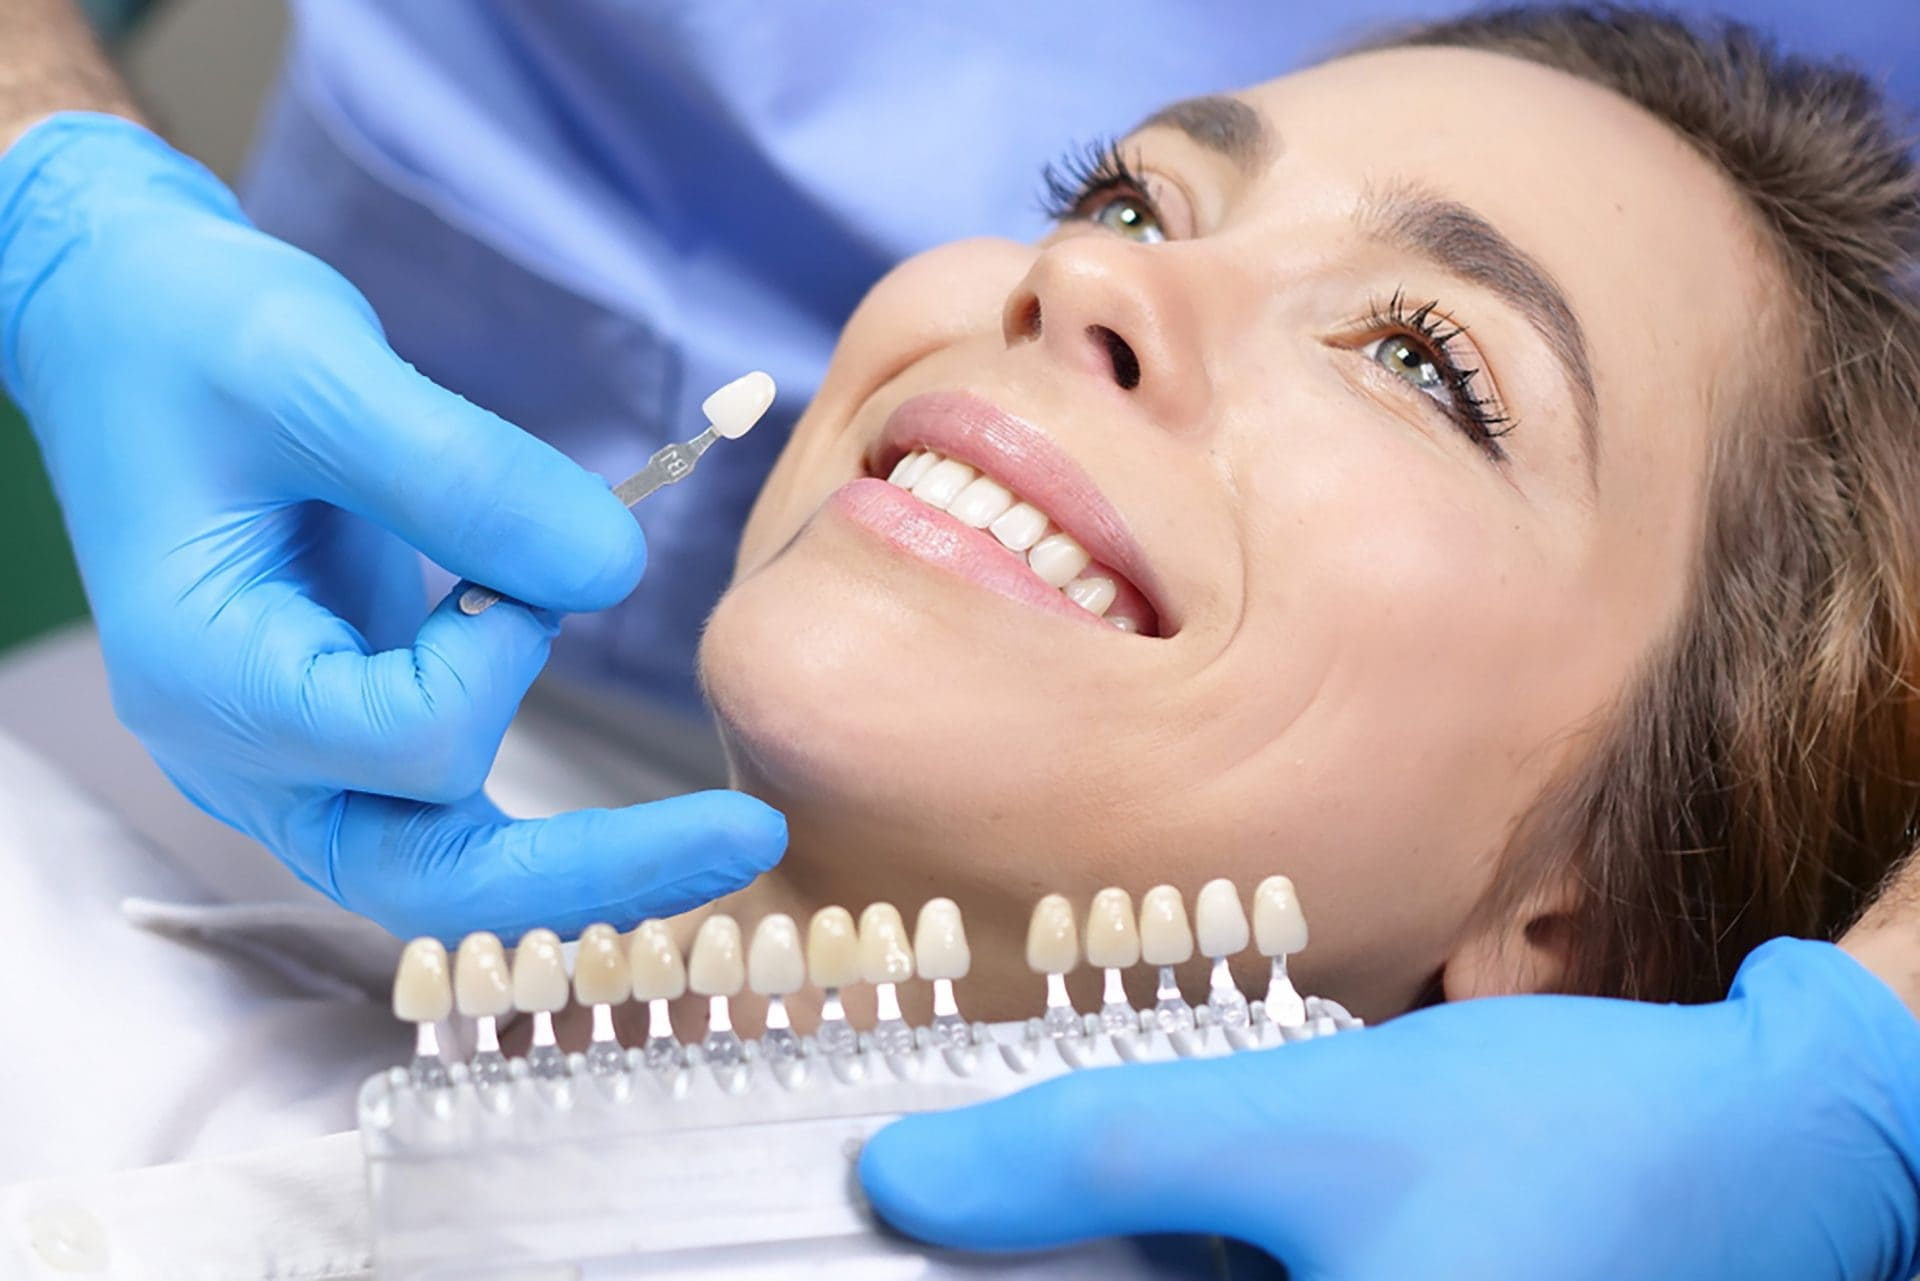 how many kinds of veneers are there